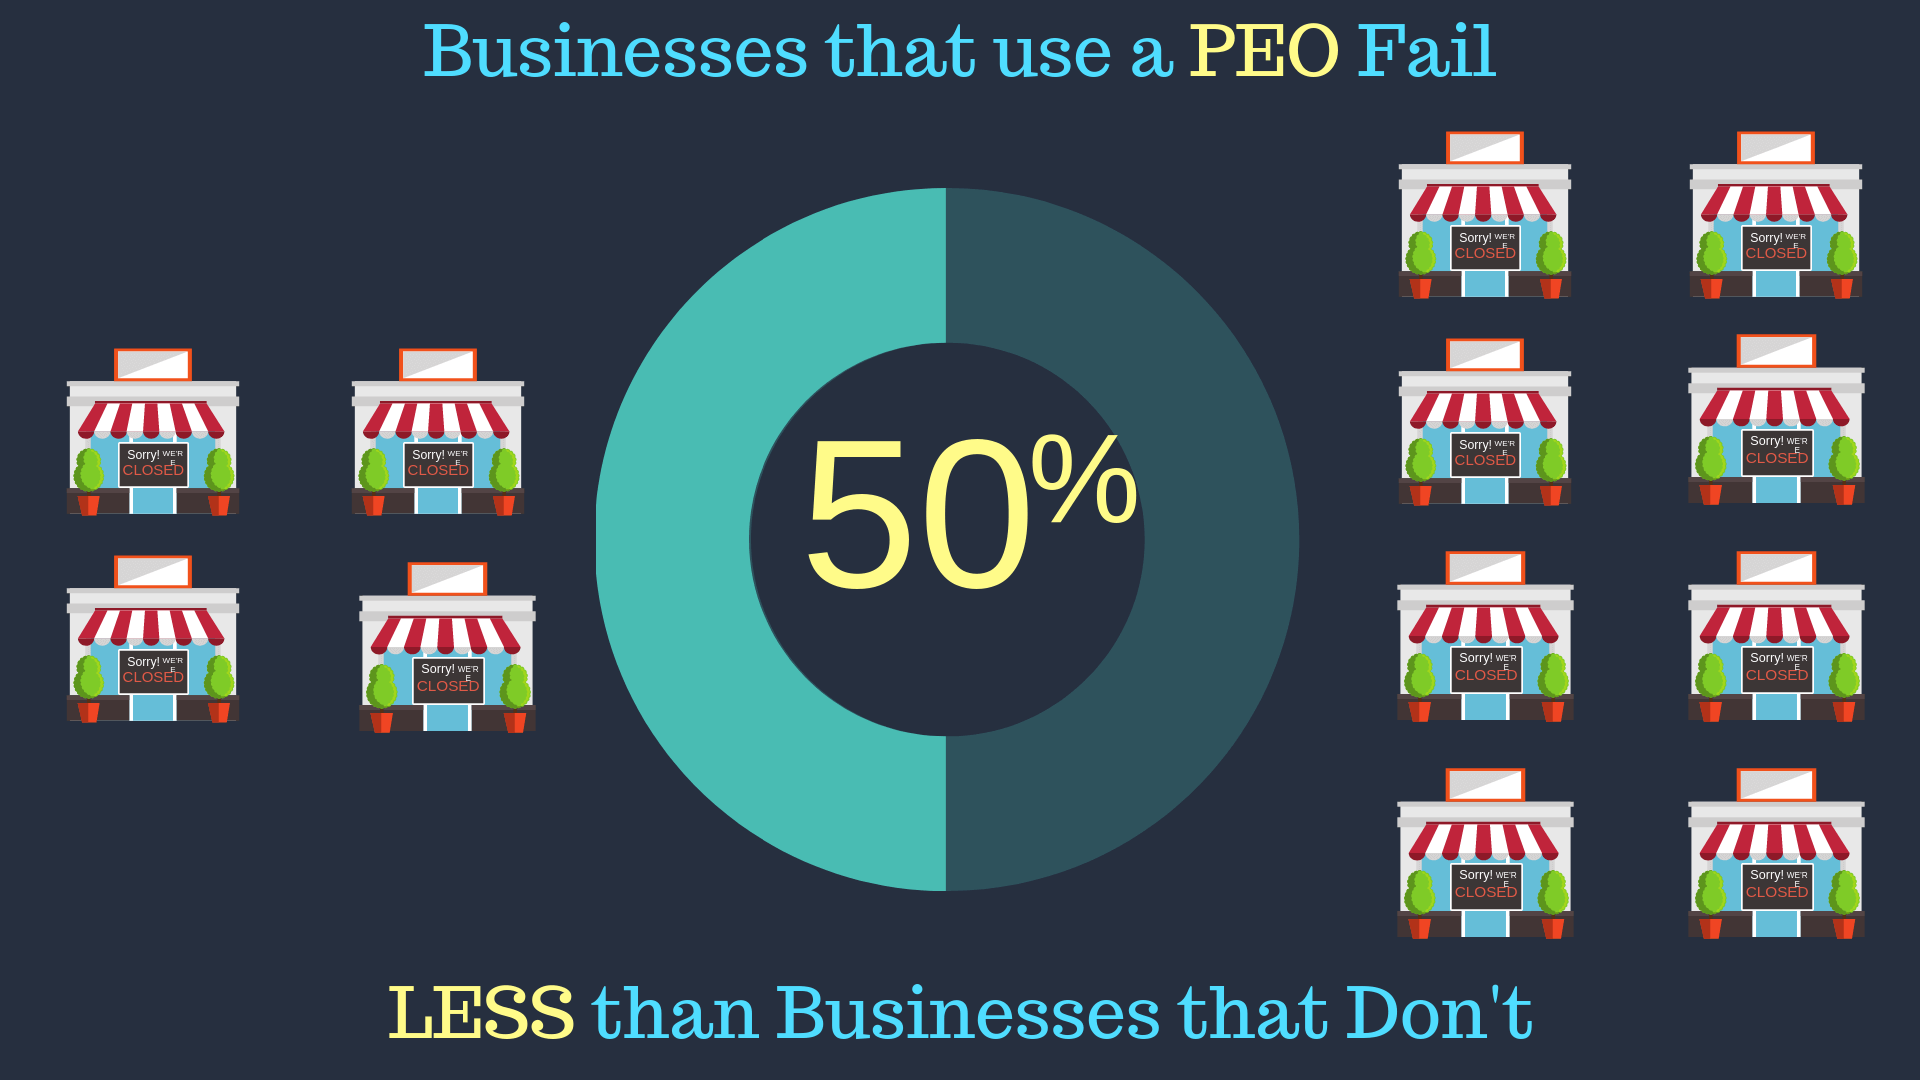 Businesses who use a PEO fail 50% less often than those who don't infographic